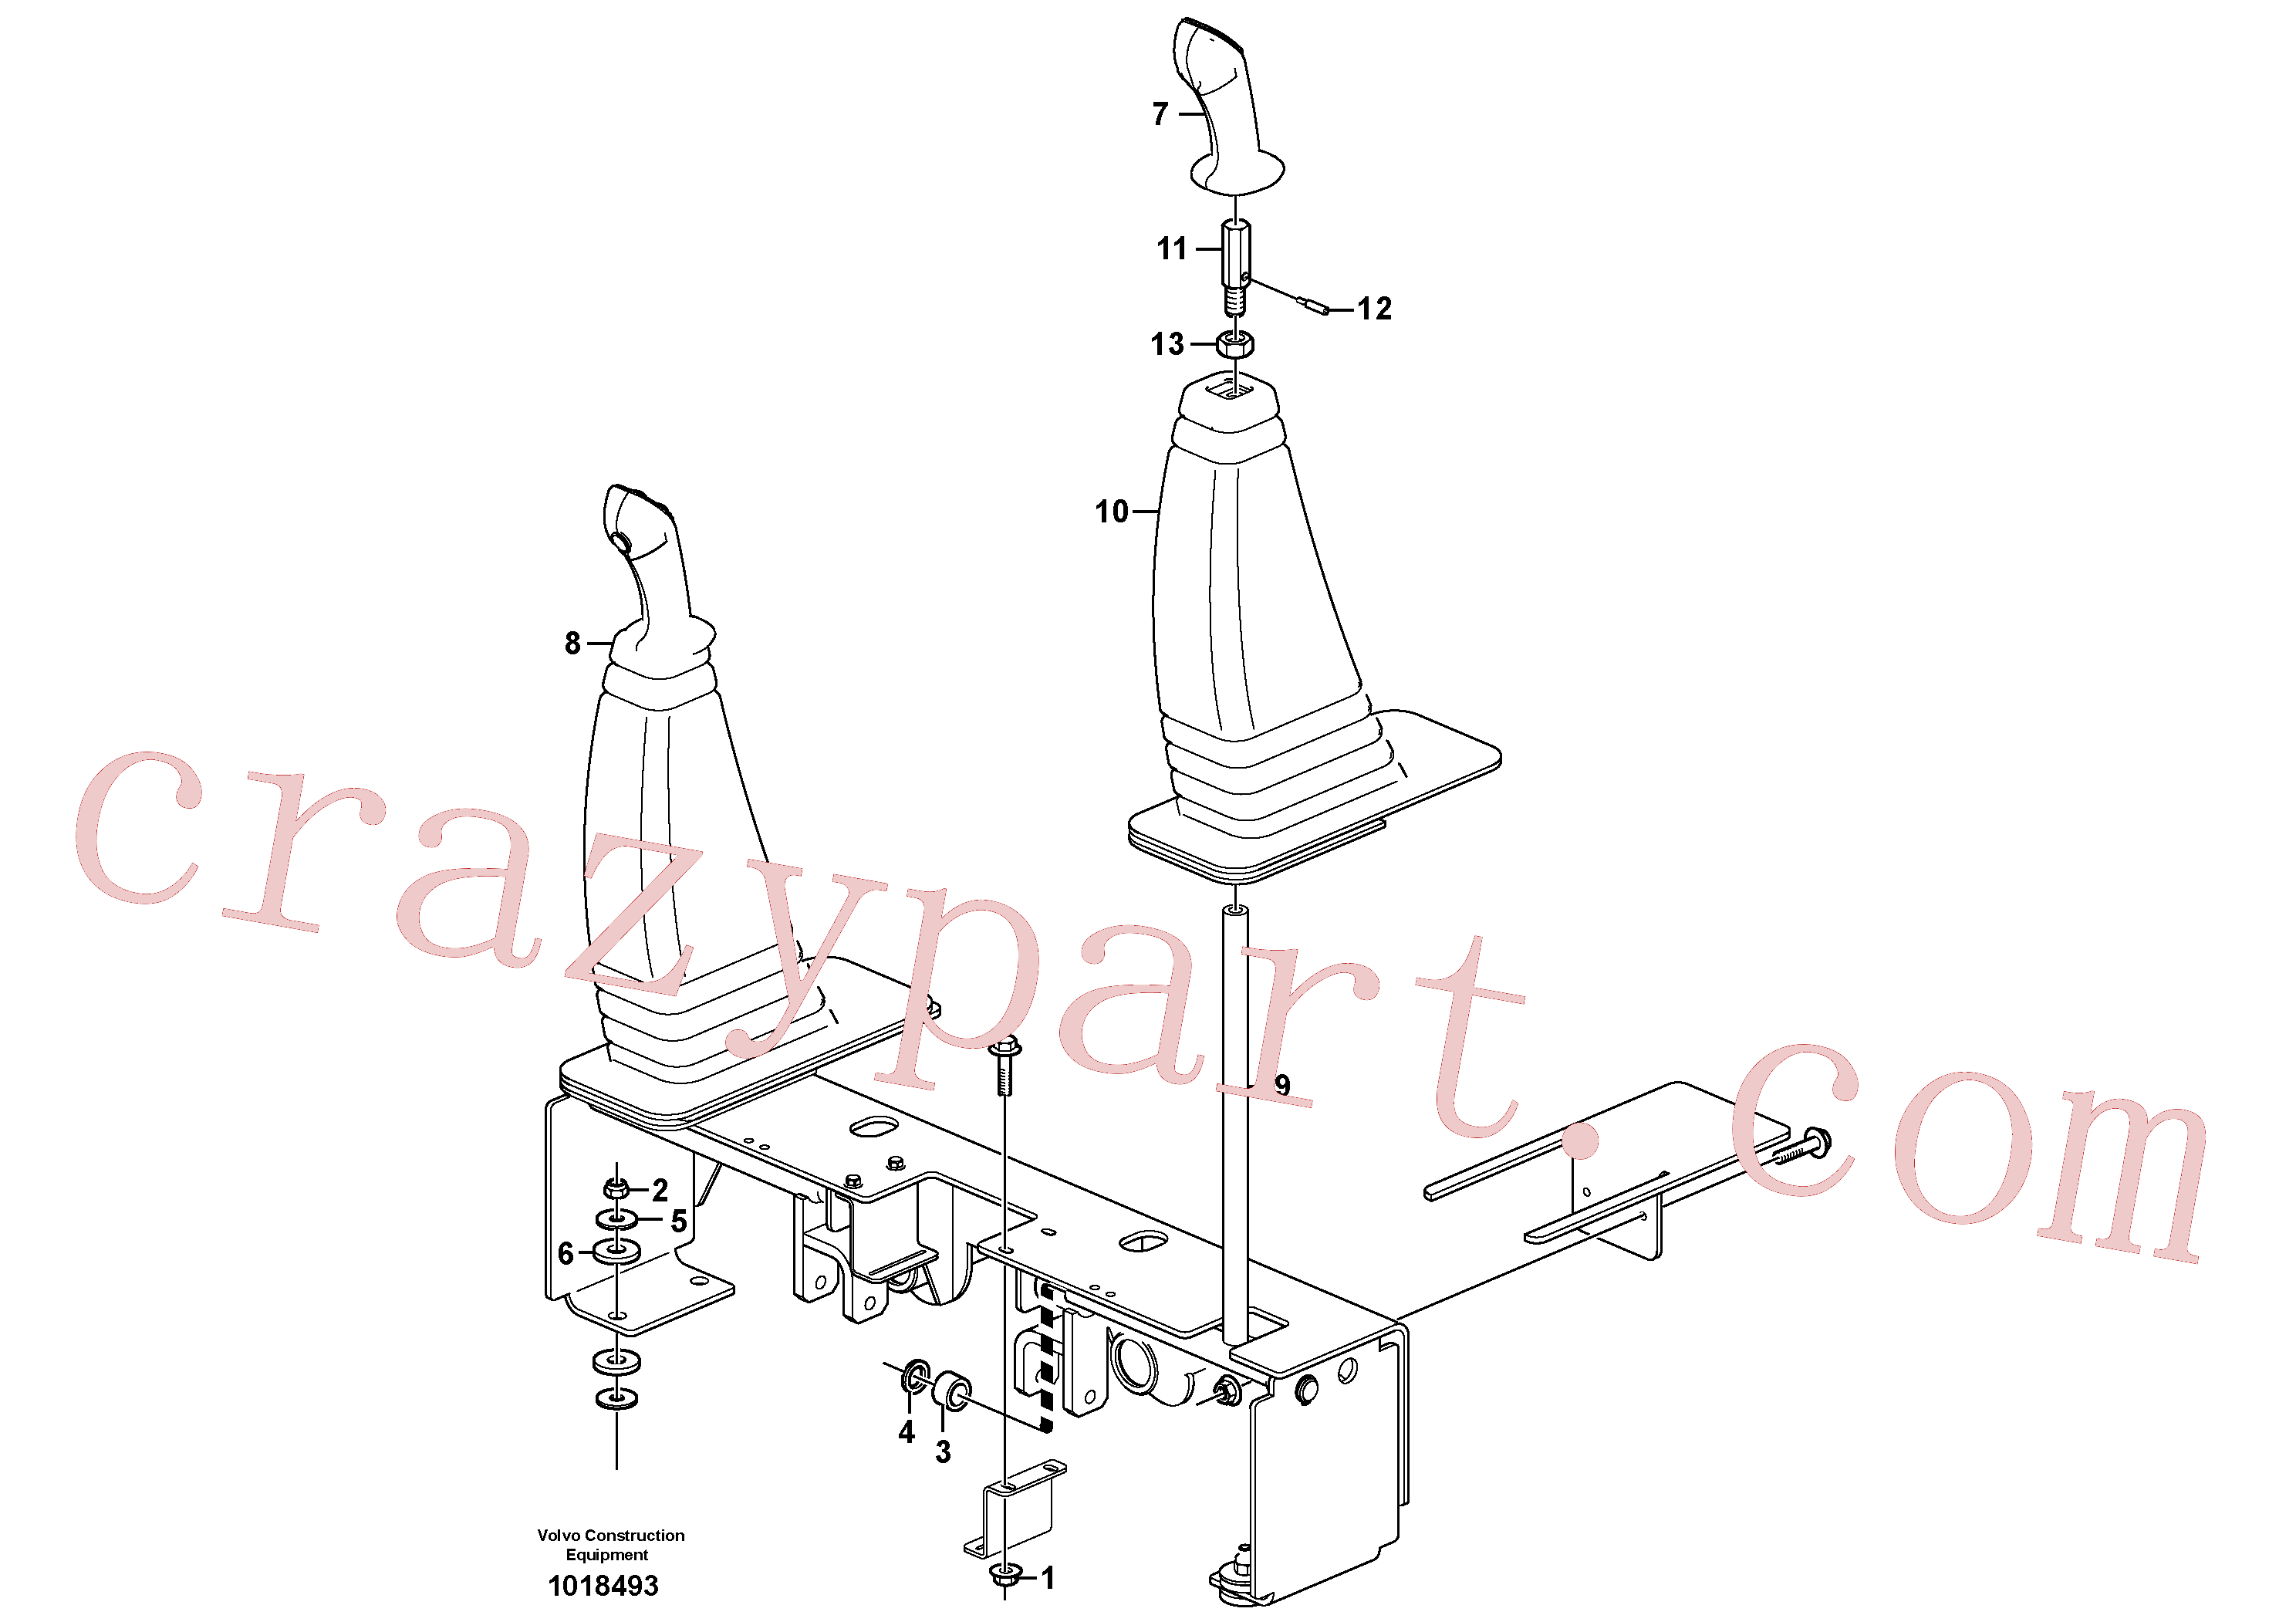 VOE11852941 for Volvo Optional hand controls(1018493 assembly)